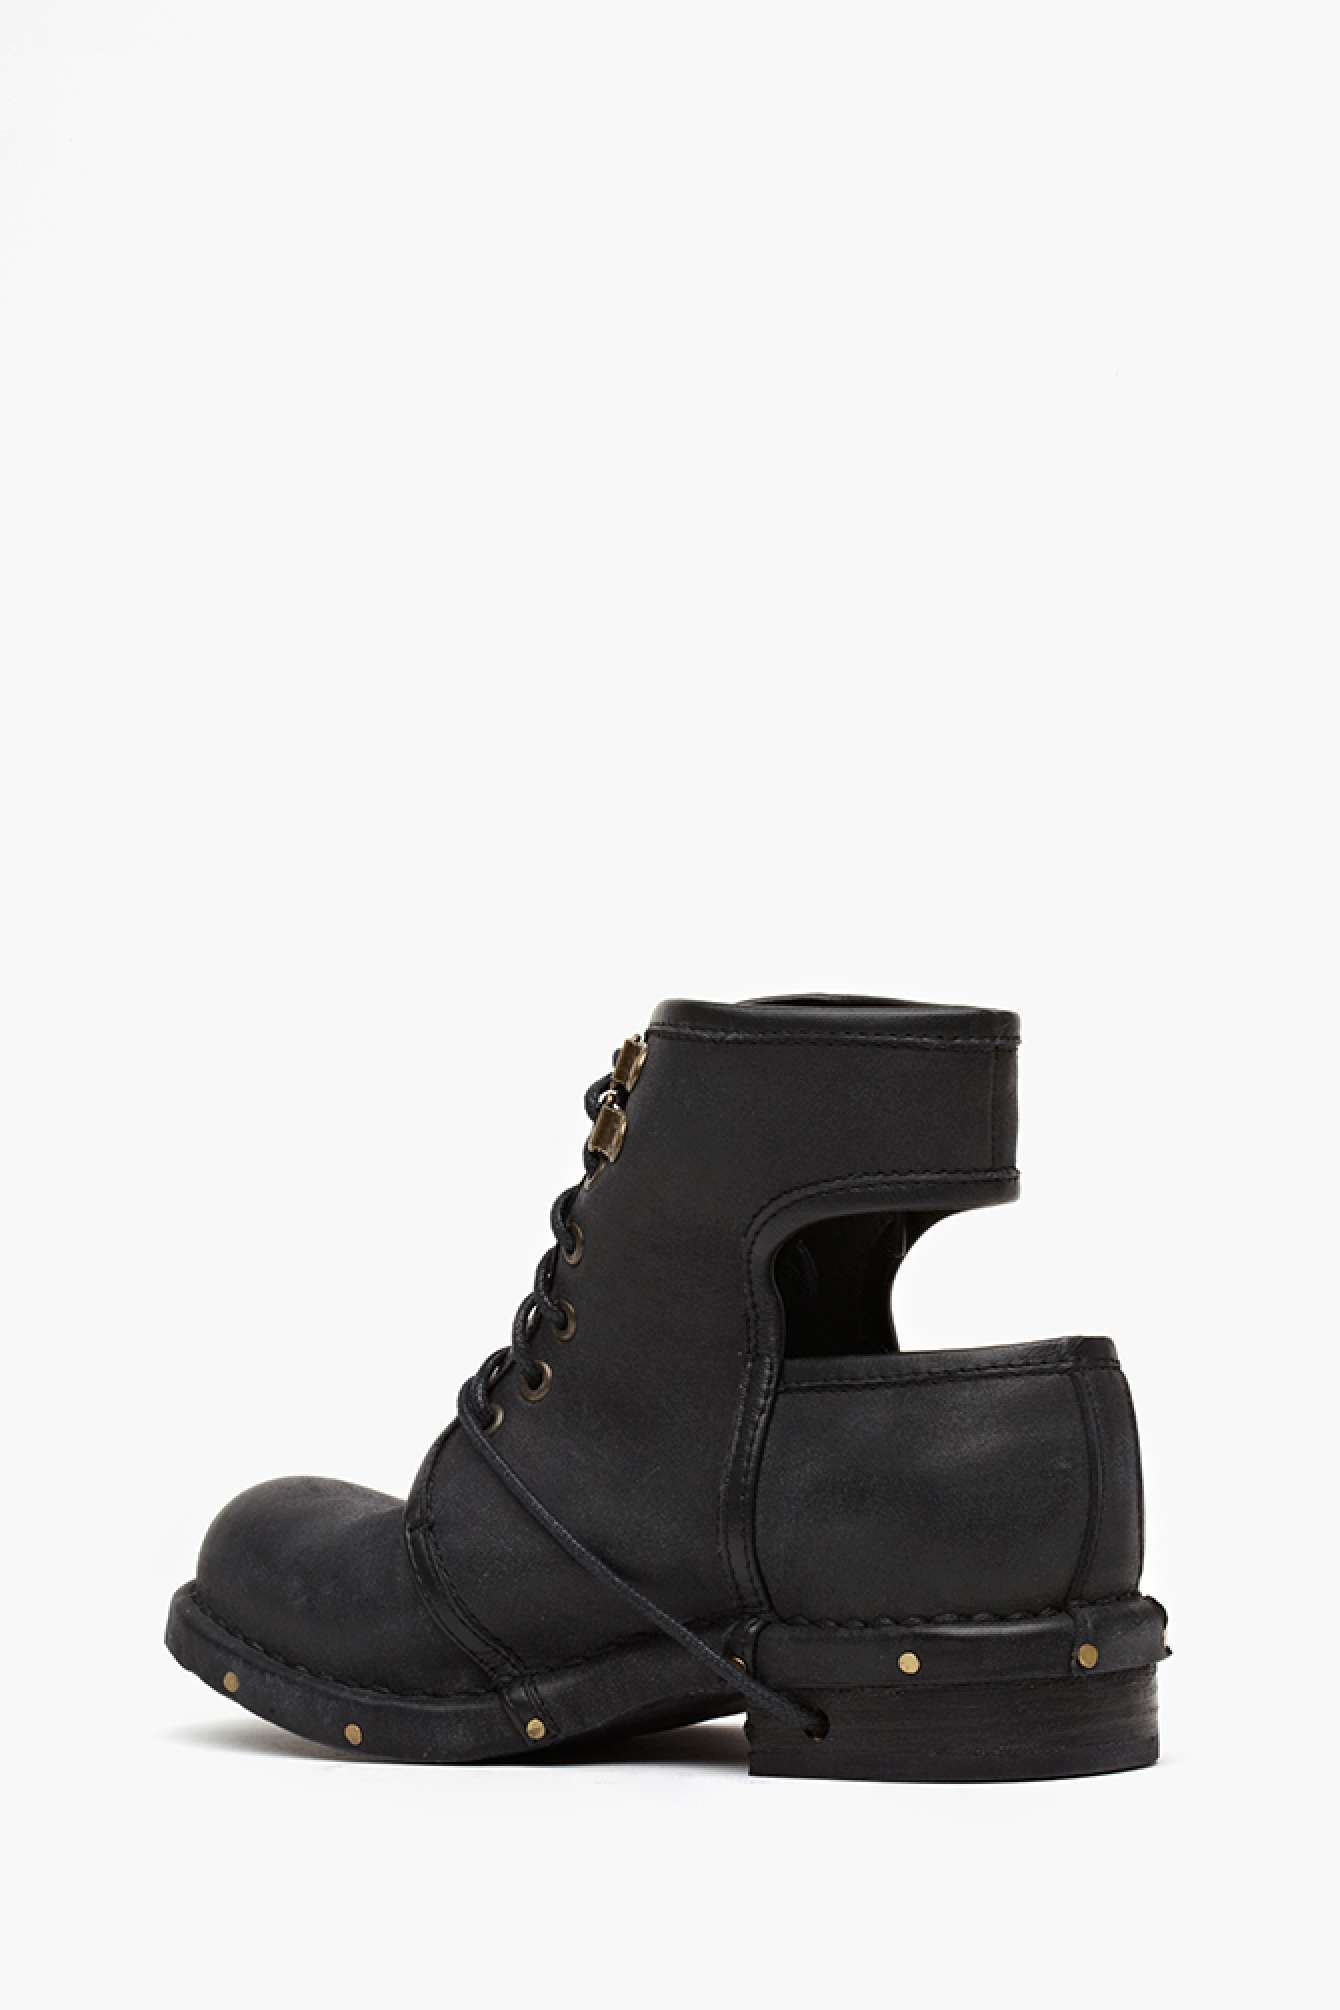 0e01e123a270 Lyst - Nasty Gal Jeffrey Campbell Rosie Cutout Combat Boot in Black